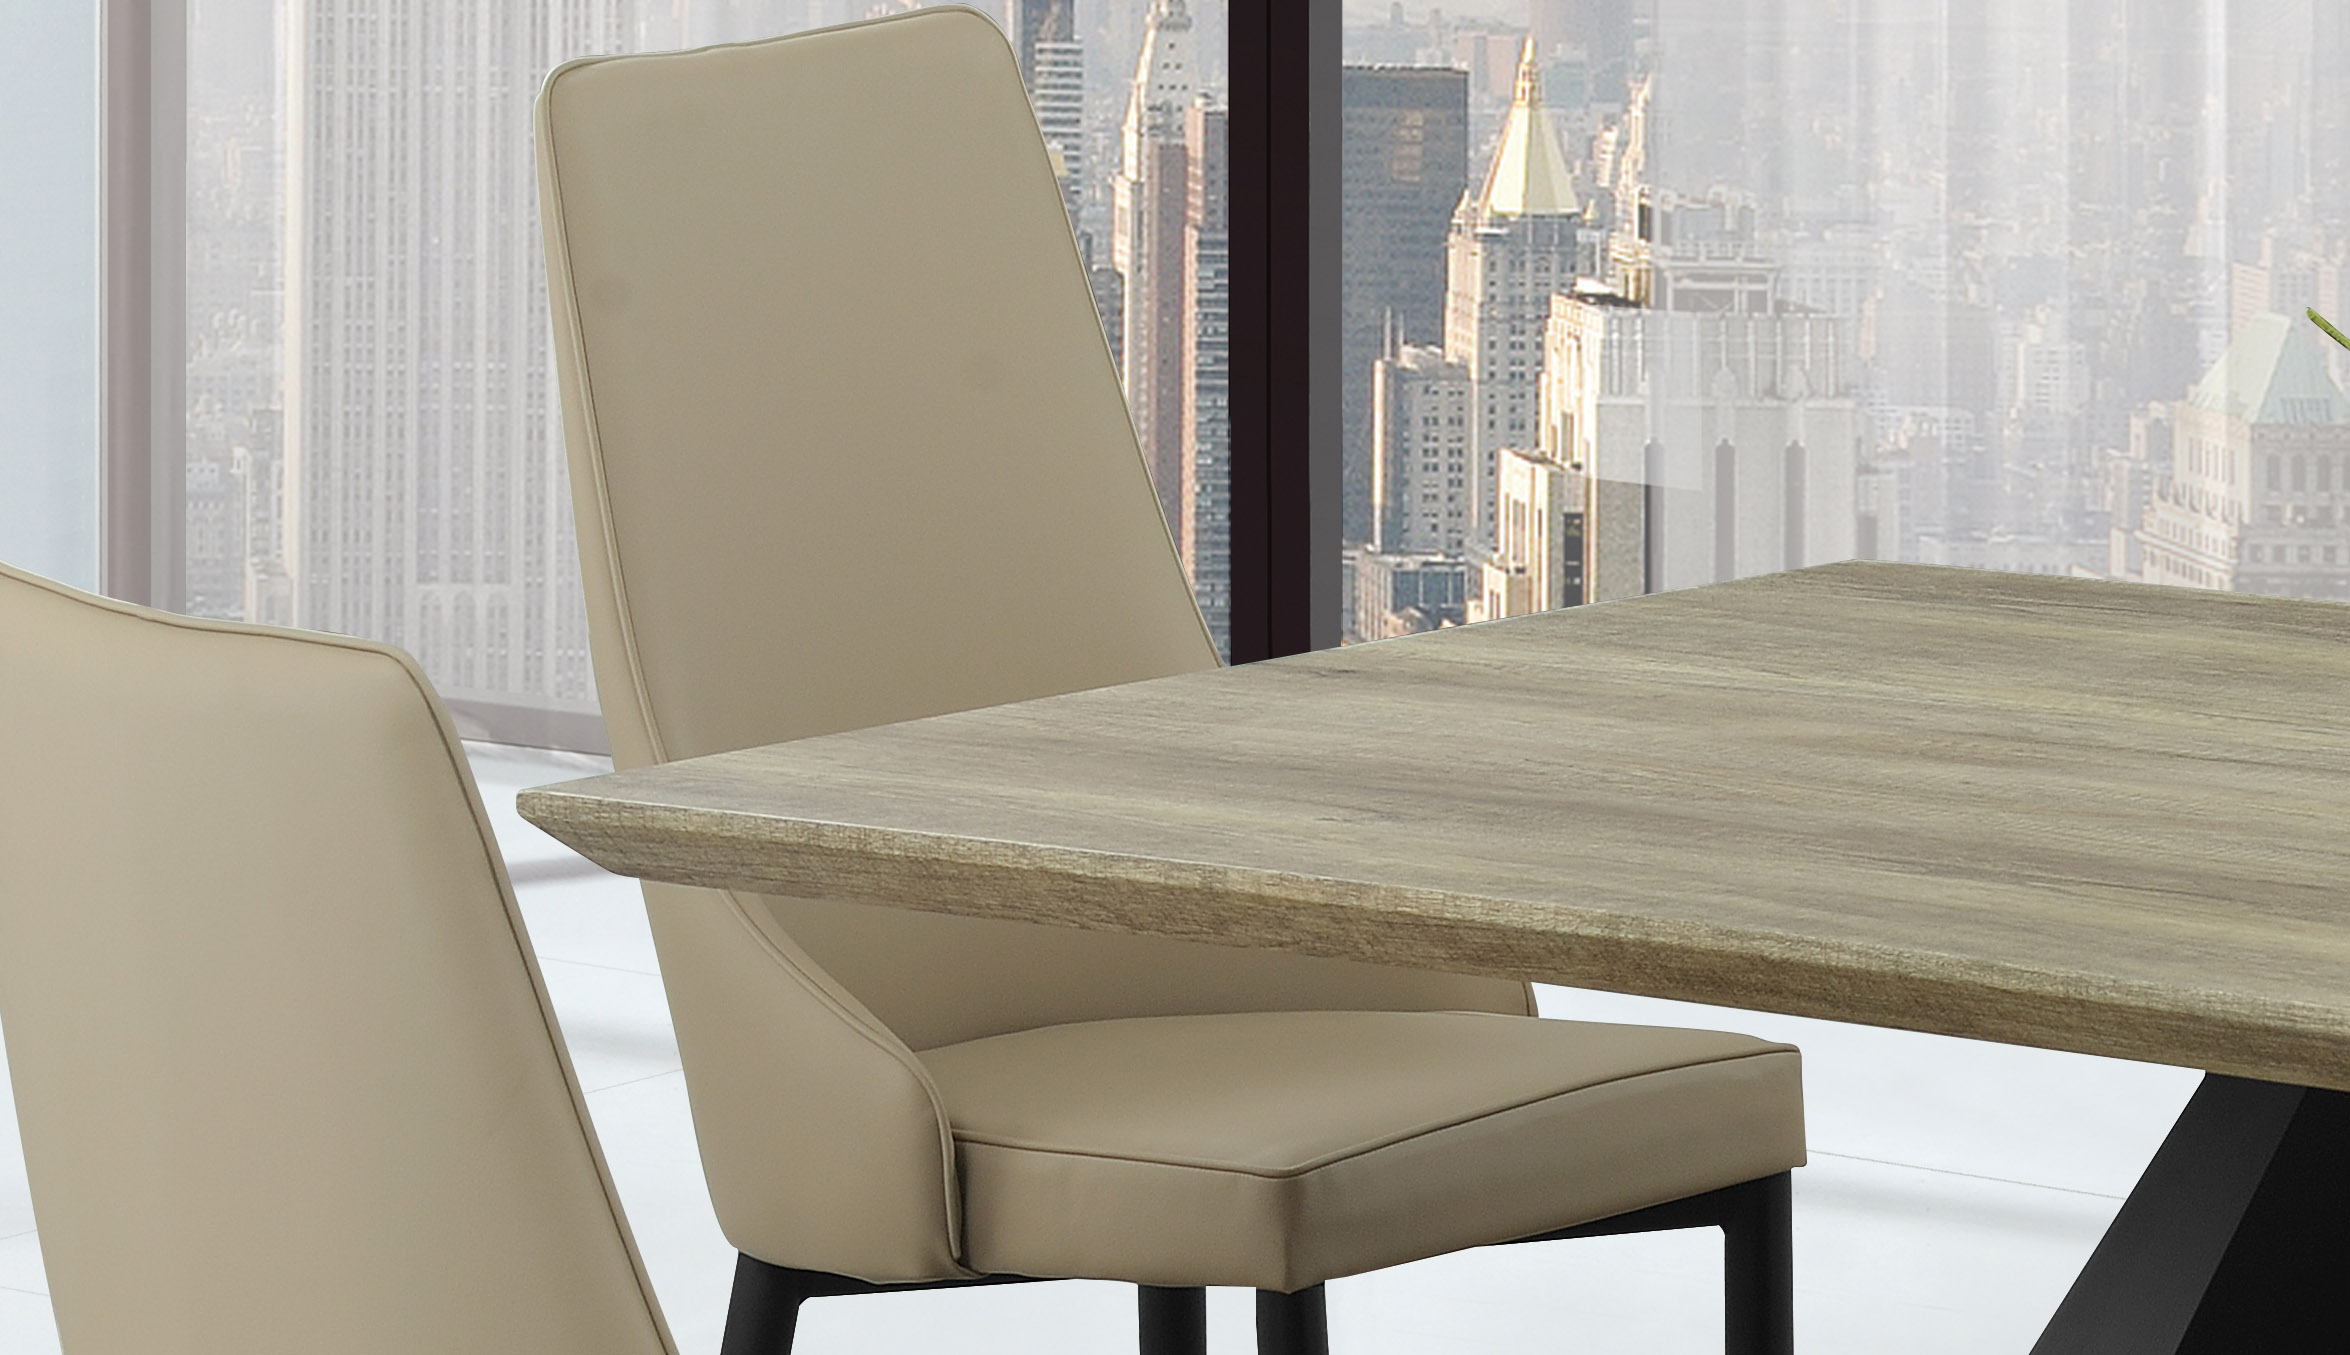 Modern Khaki Dining Table with Black Base and Khaki Chairs - Click Image to Close